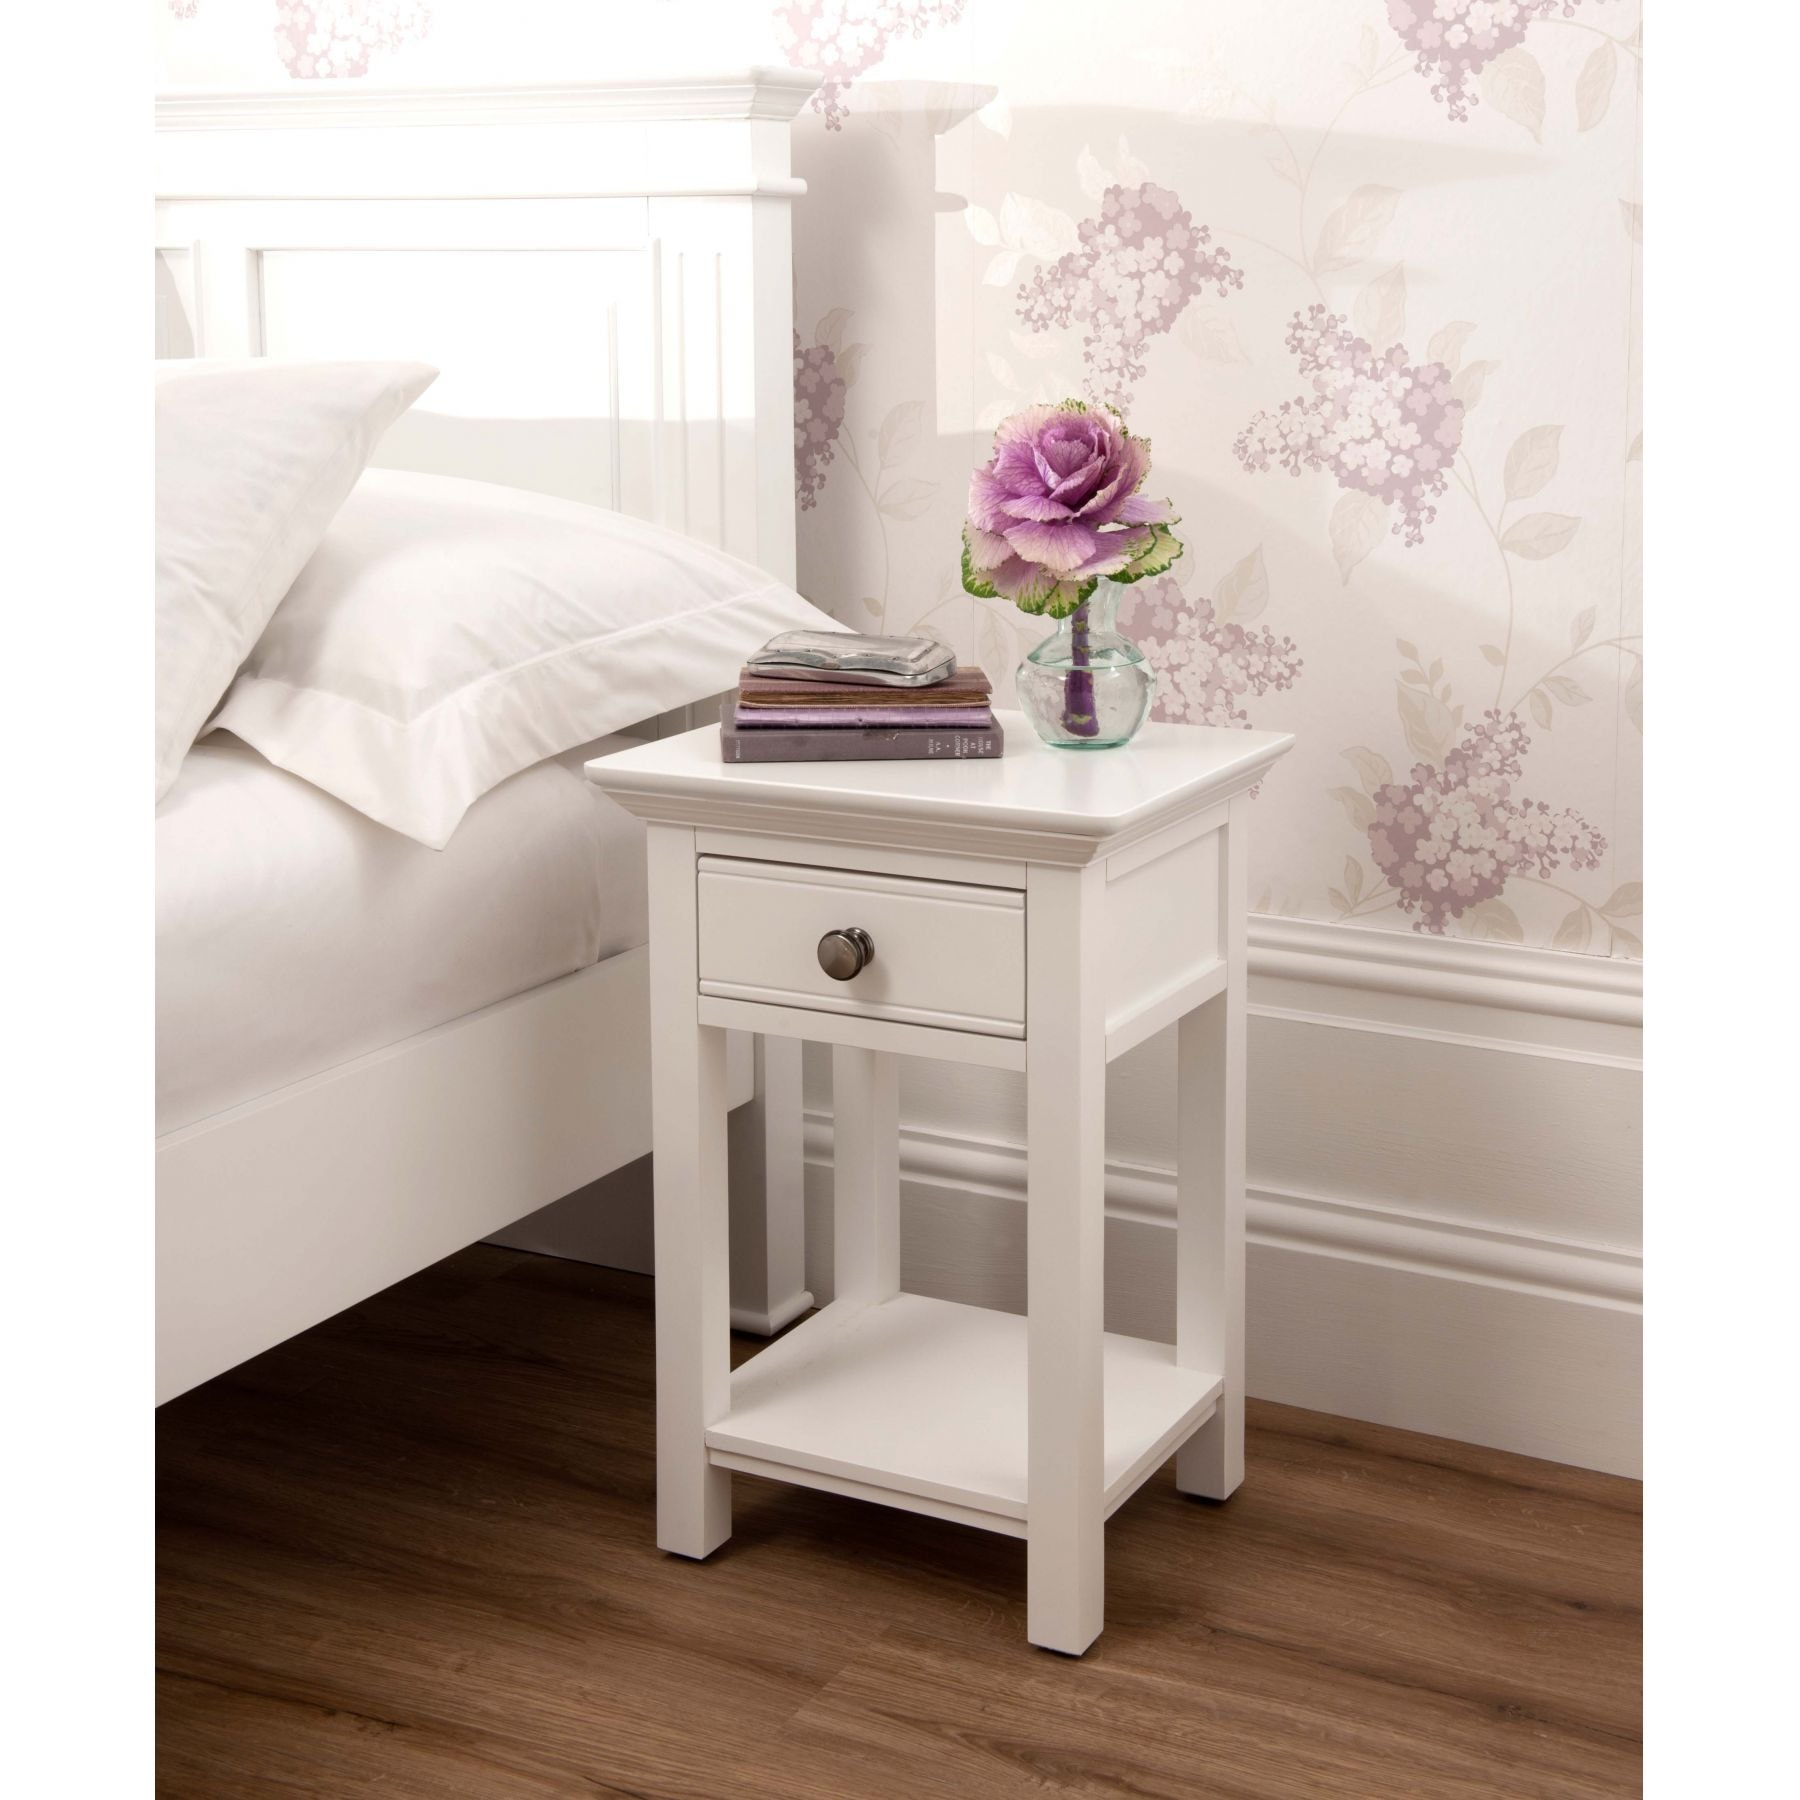 Sophia open shabby chic bedside table works well alongside for Tableaux shabby chic